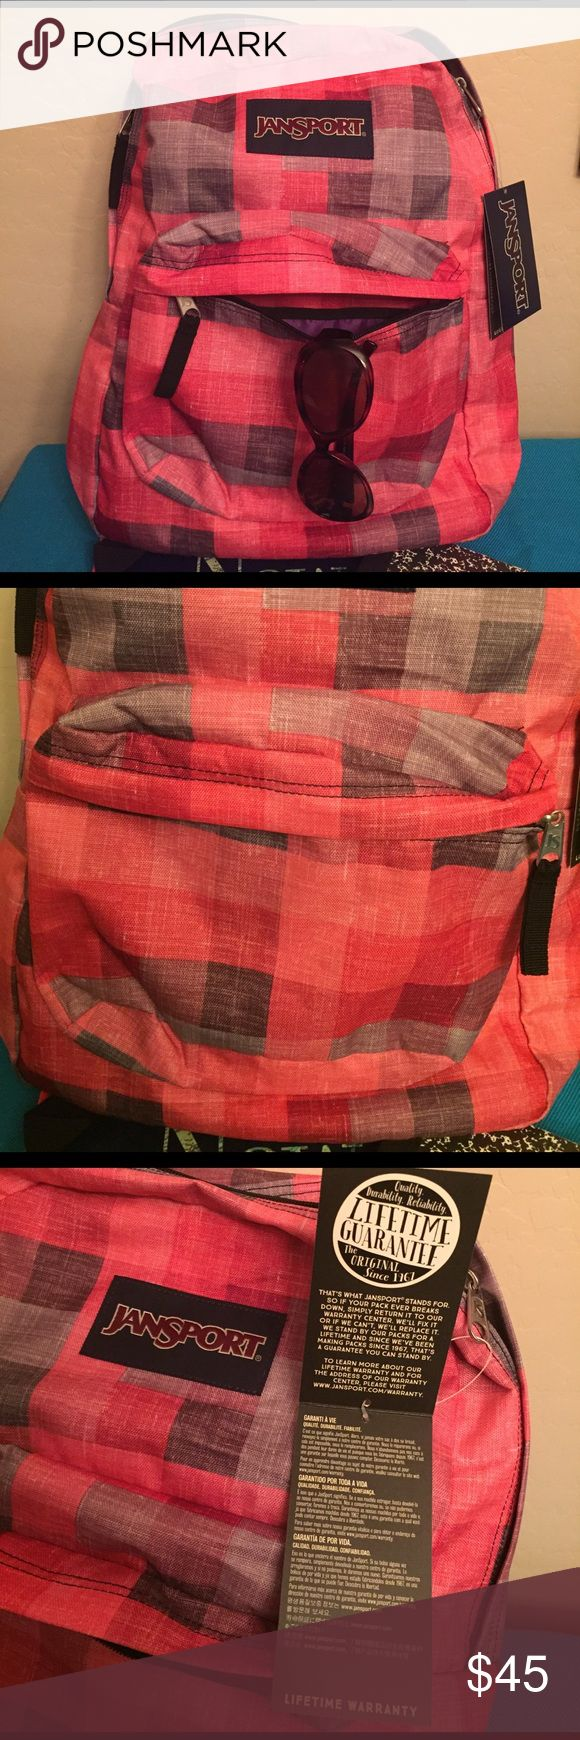 17 Best ideas about Pink Jansport Backpack on Pinterest | Monogram ...